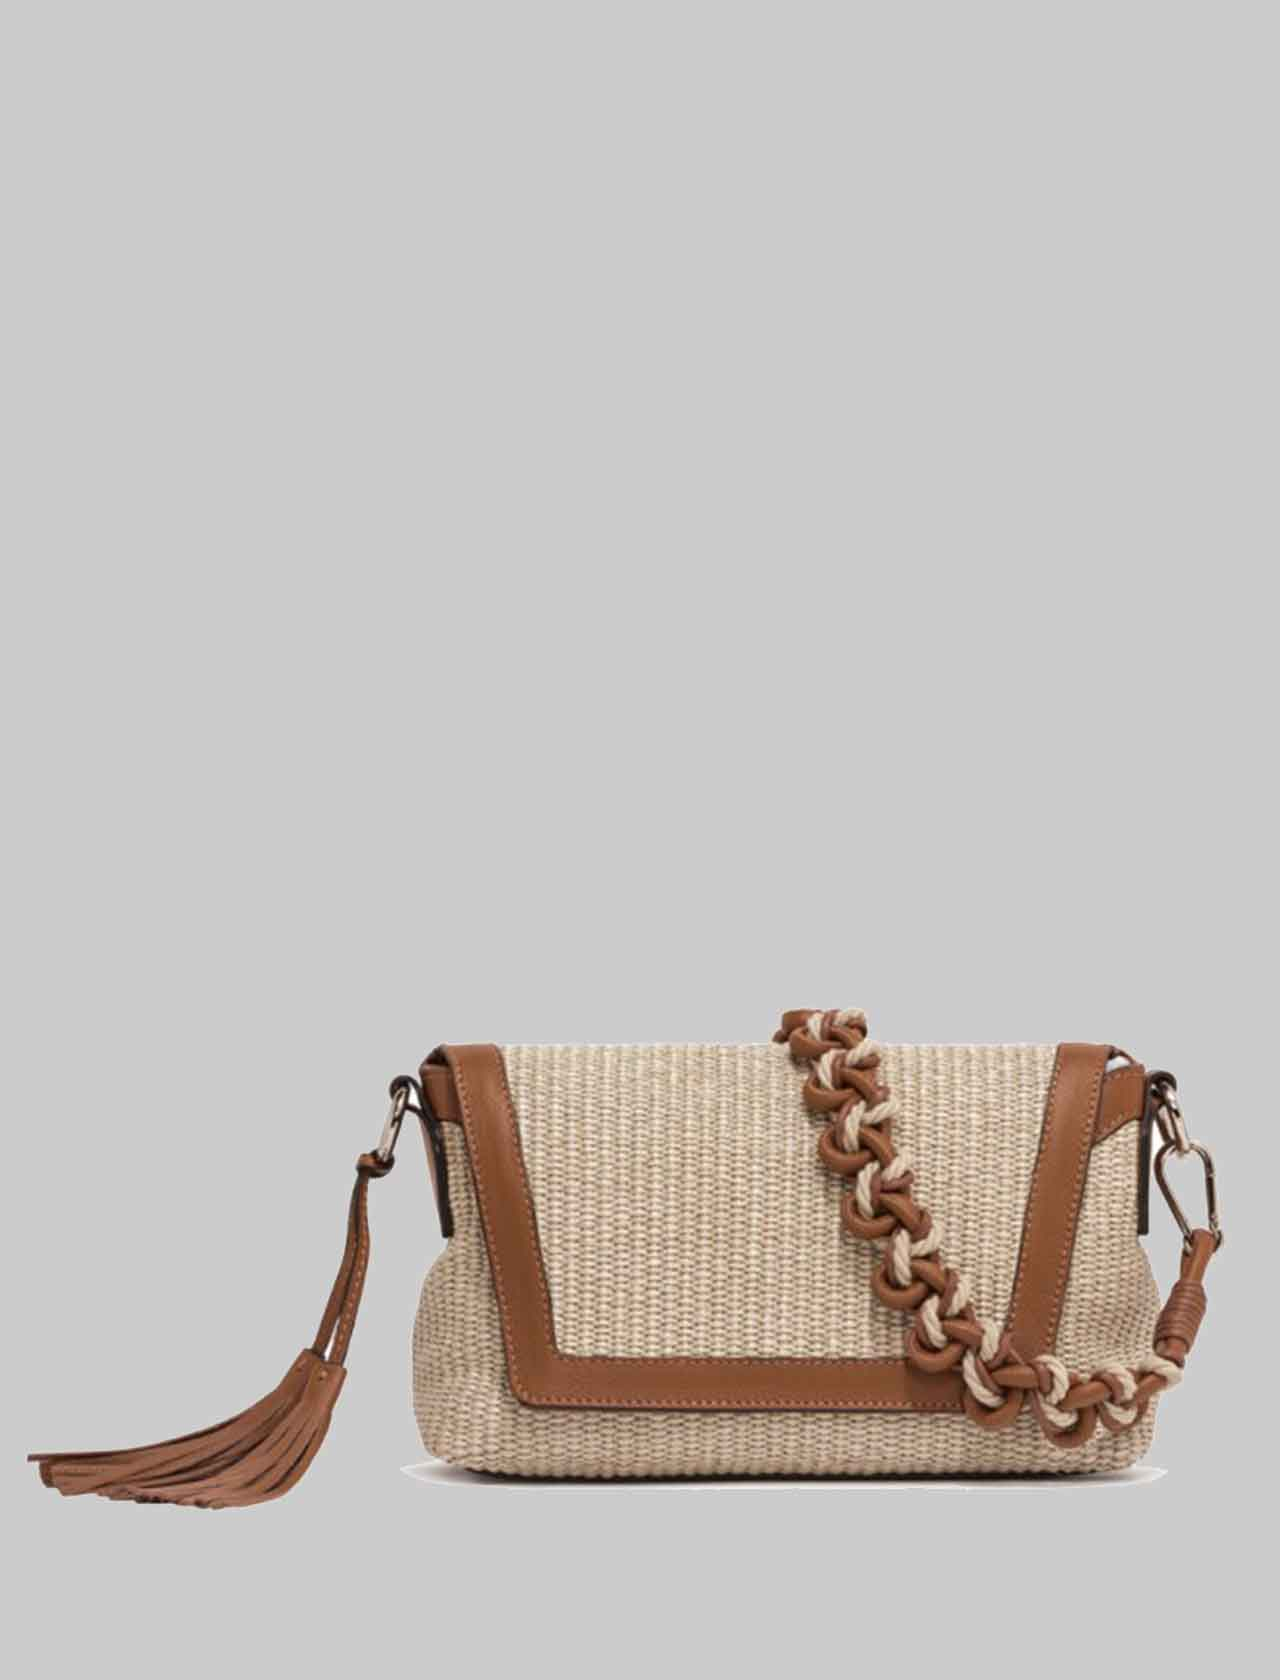 Africa Woman Shoulder Bag in Natural Fabric and Tan Leather Rope Handle and Adjustable and Removable Leather Shoulder Strap Gianni Chiarini   Bags and backpacks   BS83762436